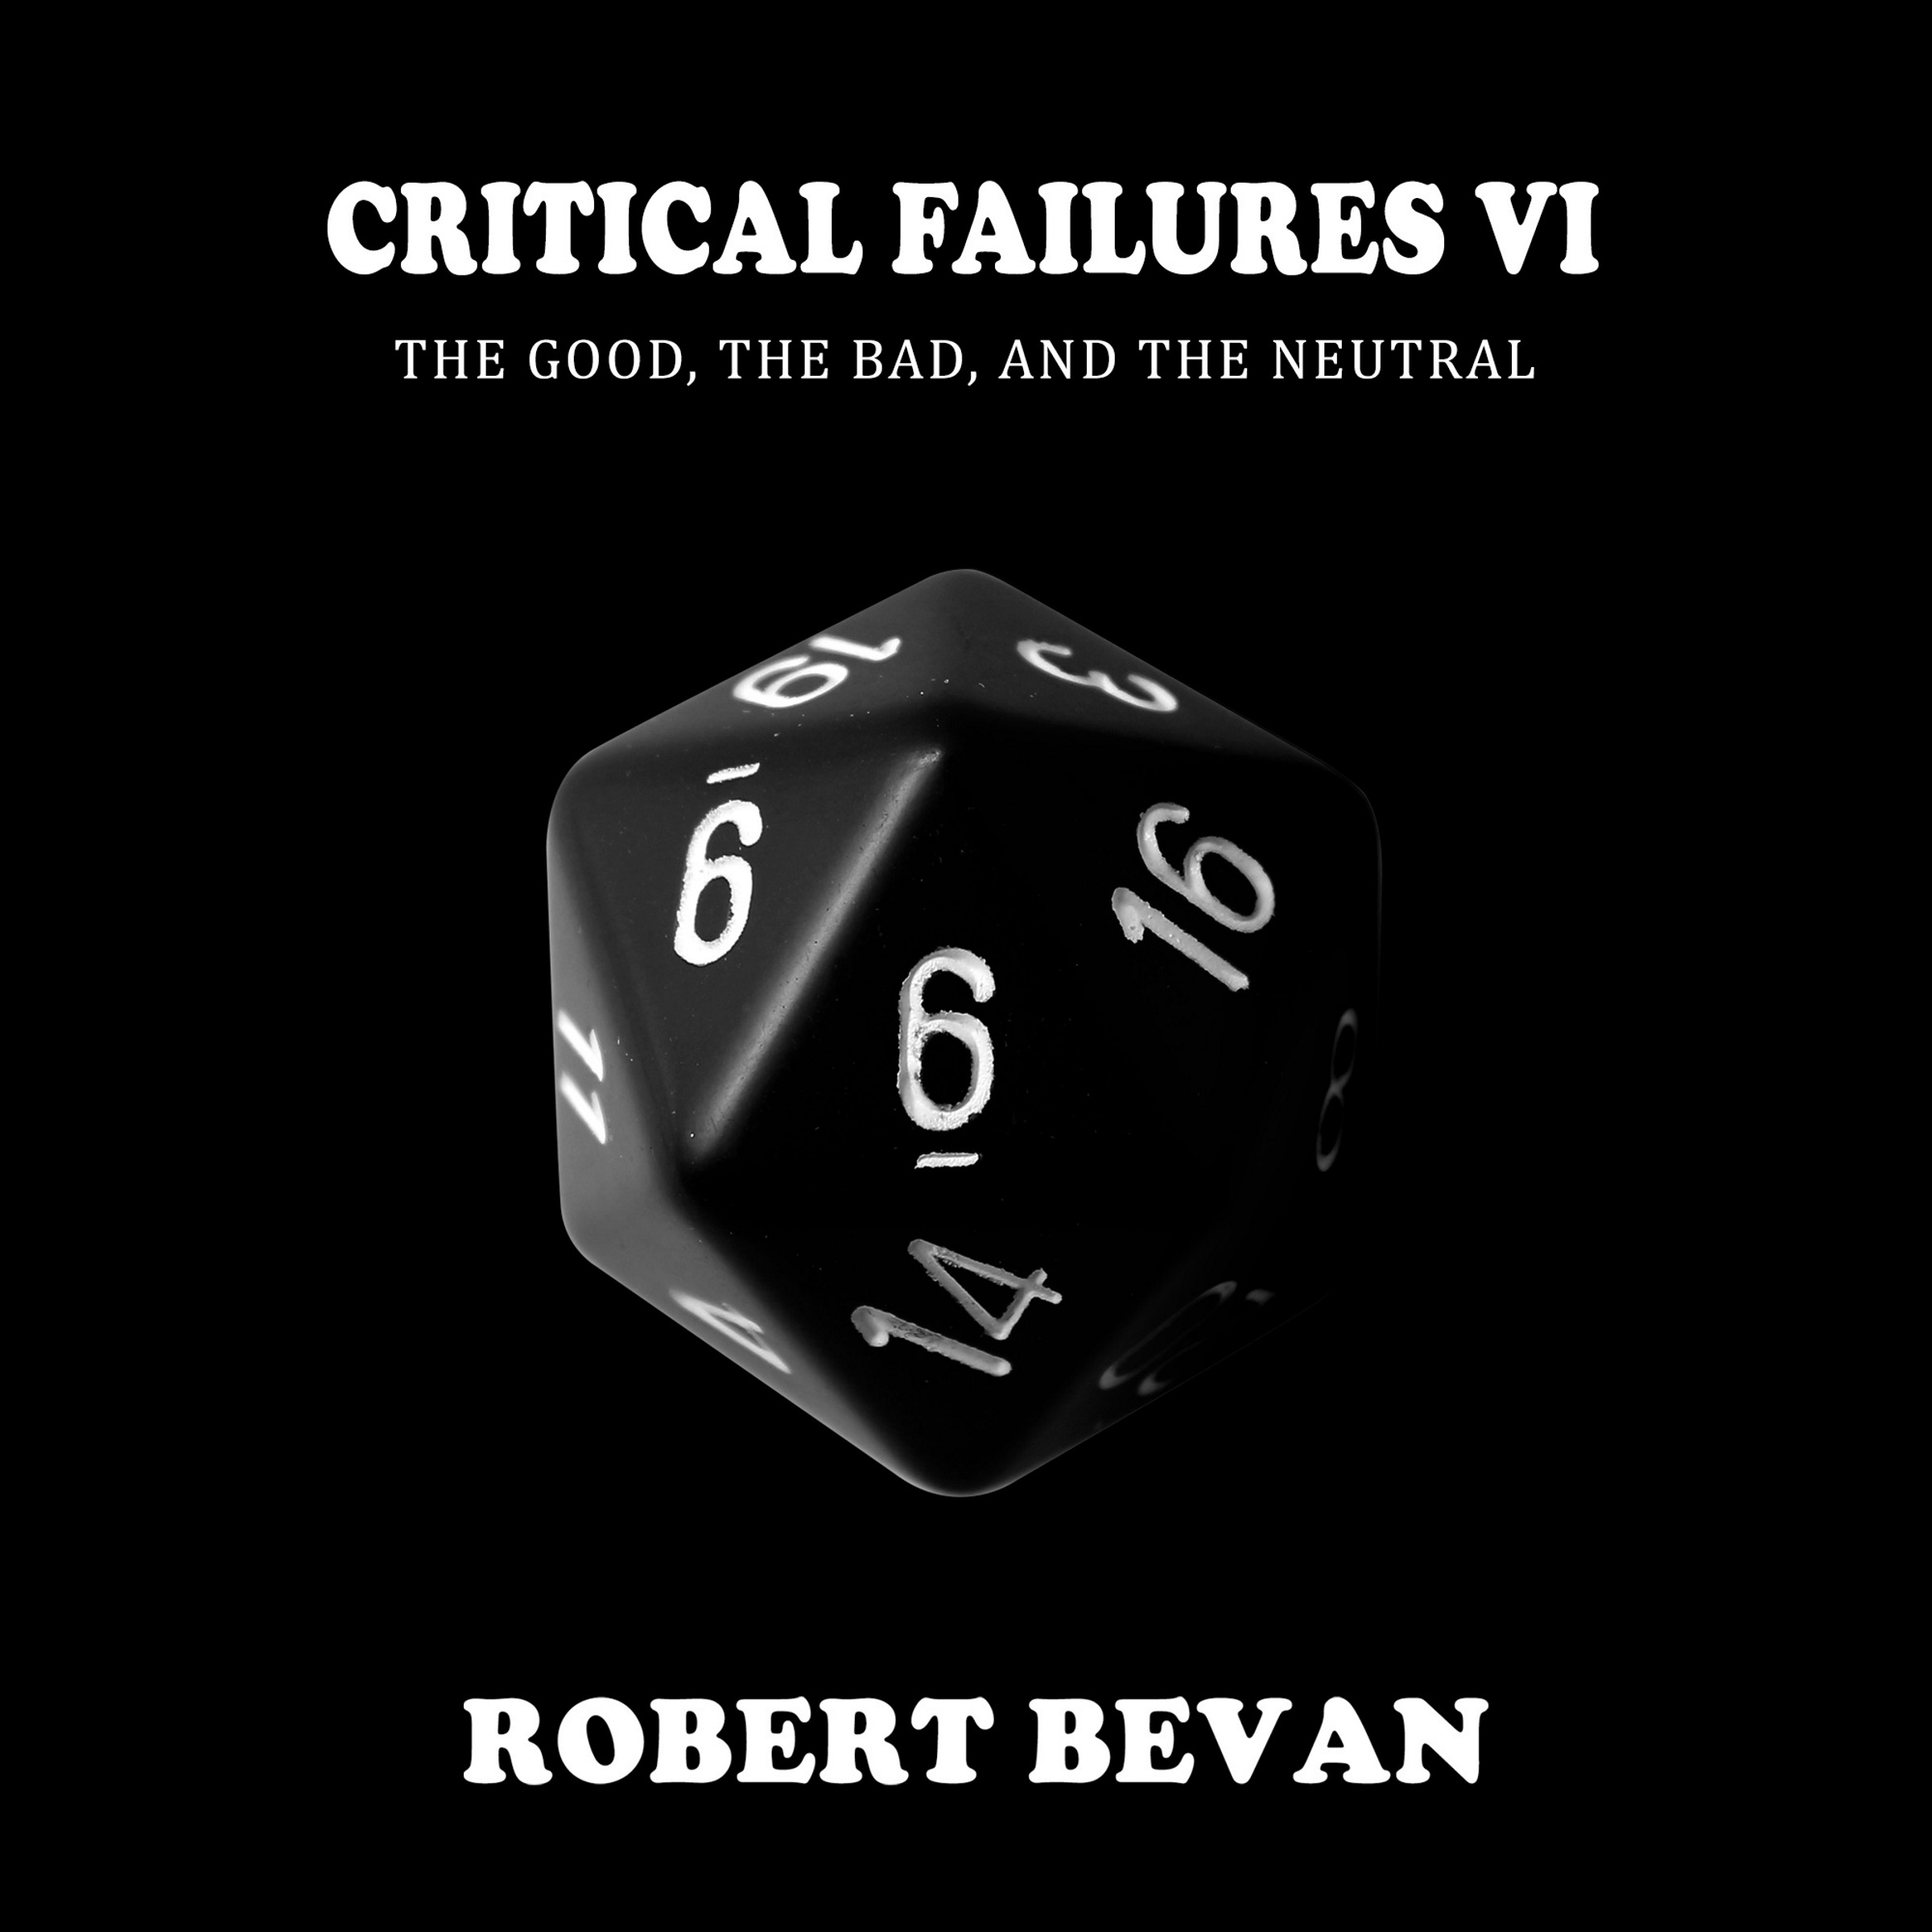 Critical Failures 6 (audio).jpg